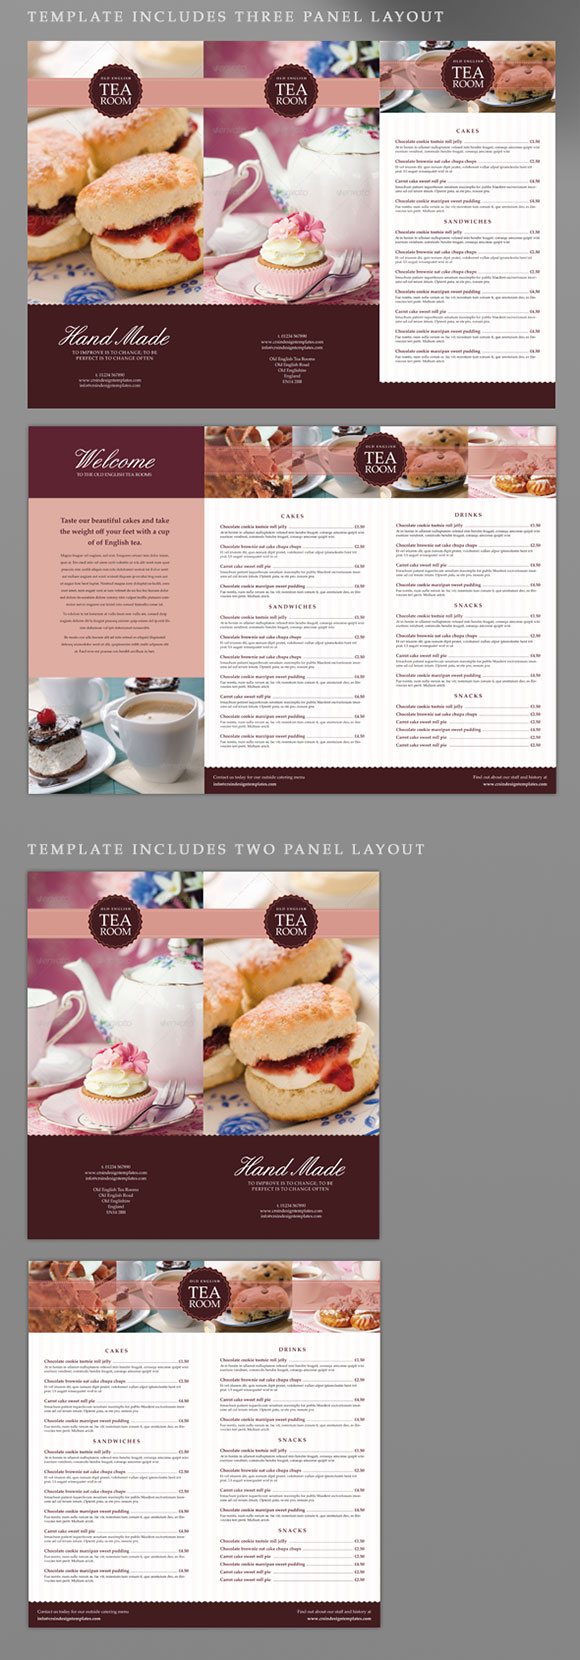 tea room coffee shop indesign menu template crs indesign templates. Black Bedroom Furniture Sets. Home Design Ideas